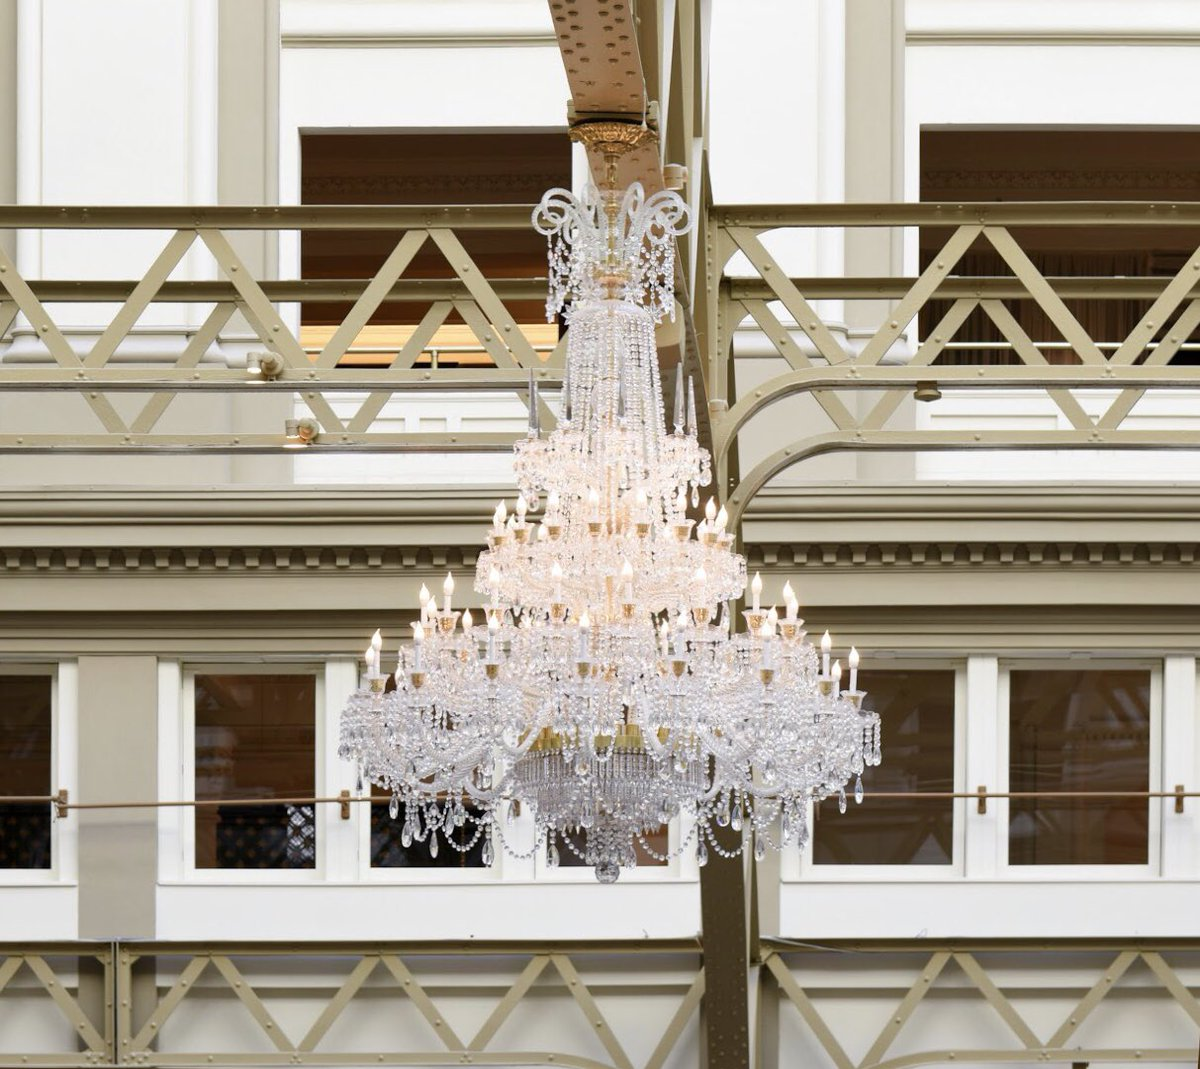 Did you know there are 630 custom-designed Schonbek-Swarovski chandeliers strategically located throughout @TrumpDC?   No detail is too small when the end goal is excellence: https://t.co/vV8NrNGNFa https://t.co/Lw9nCfE3Bx